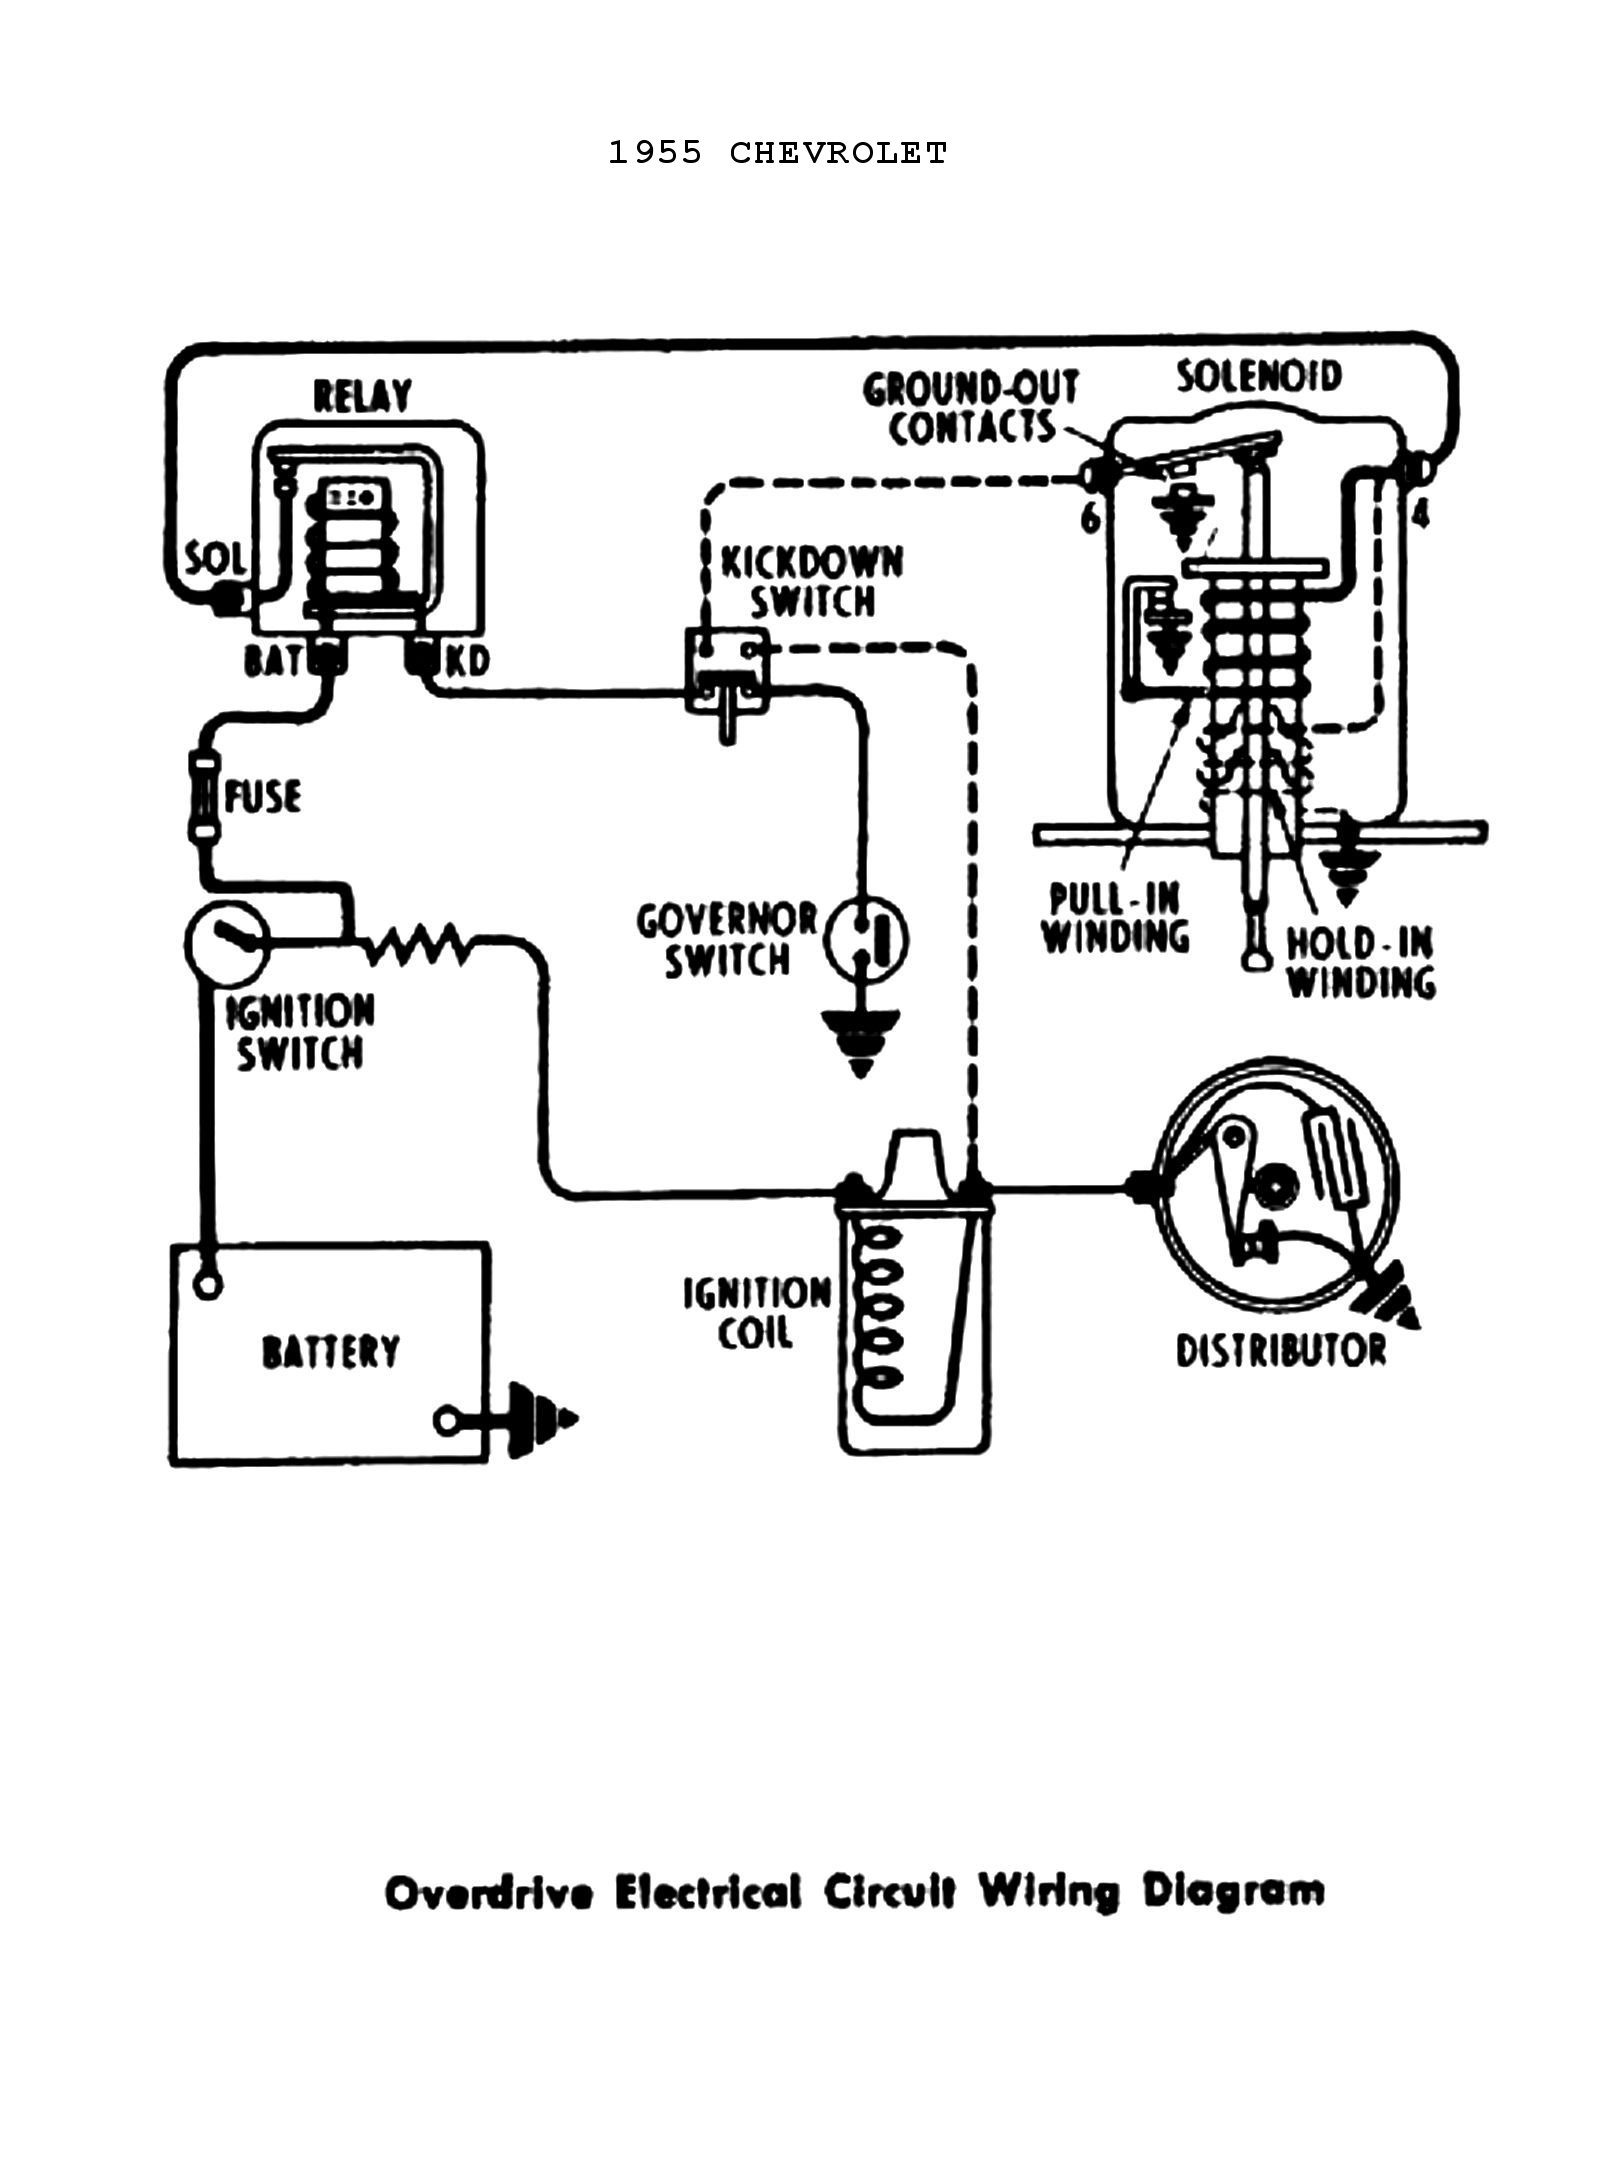 Starter 1972 Chevy Truck Wiring Diagram additionally Catalog3 besides 4z8yf Chevrolet 1500 Chevy 1500 1994 Its Not Turning as well Vw Starters Generators Alternators additionally Signals. on gm turn signal wiring